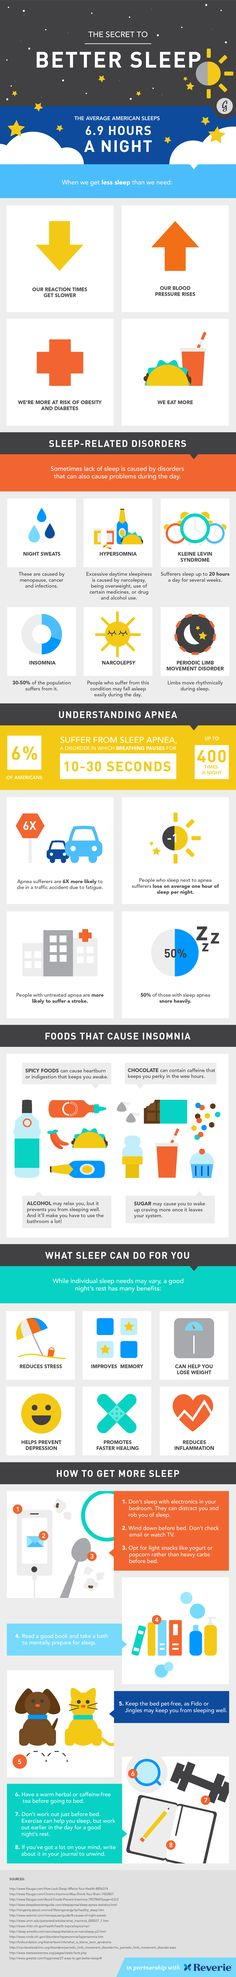 Infographic about better sleep for Healthy Living